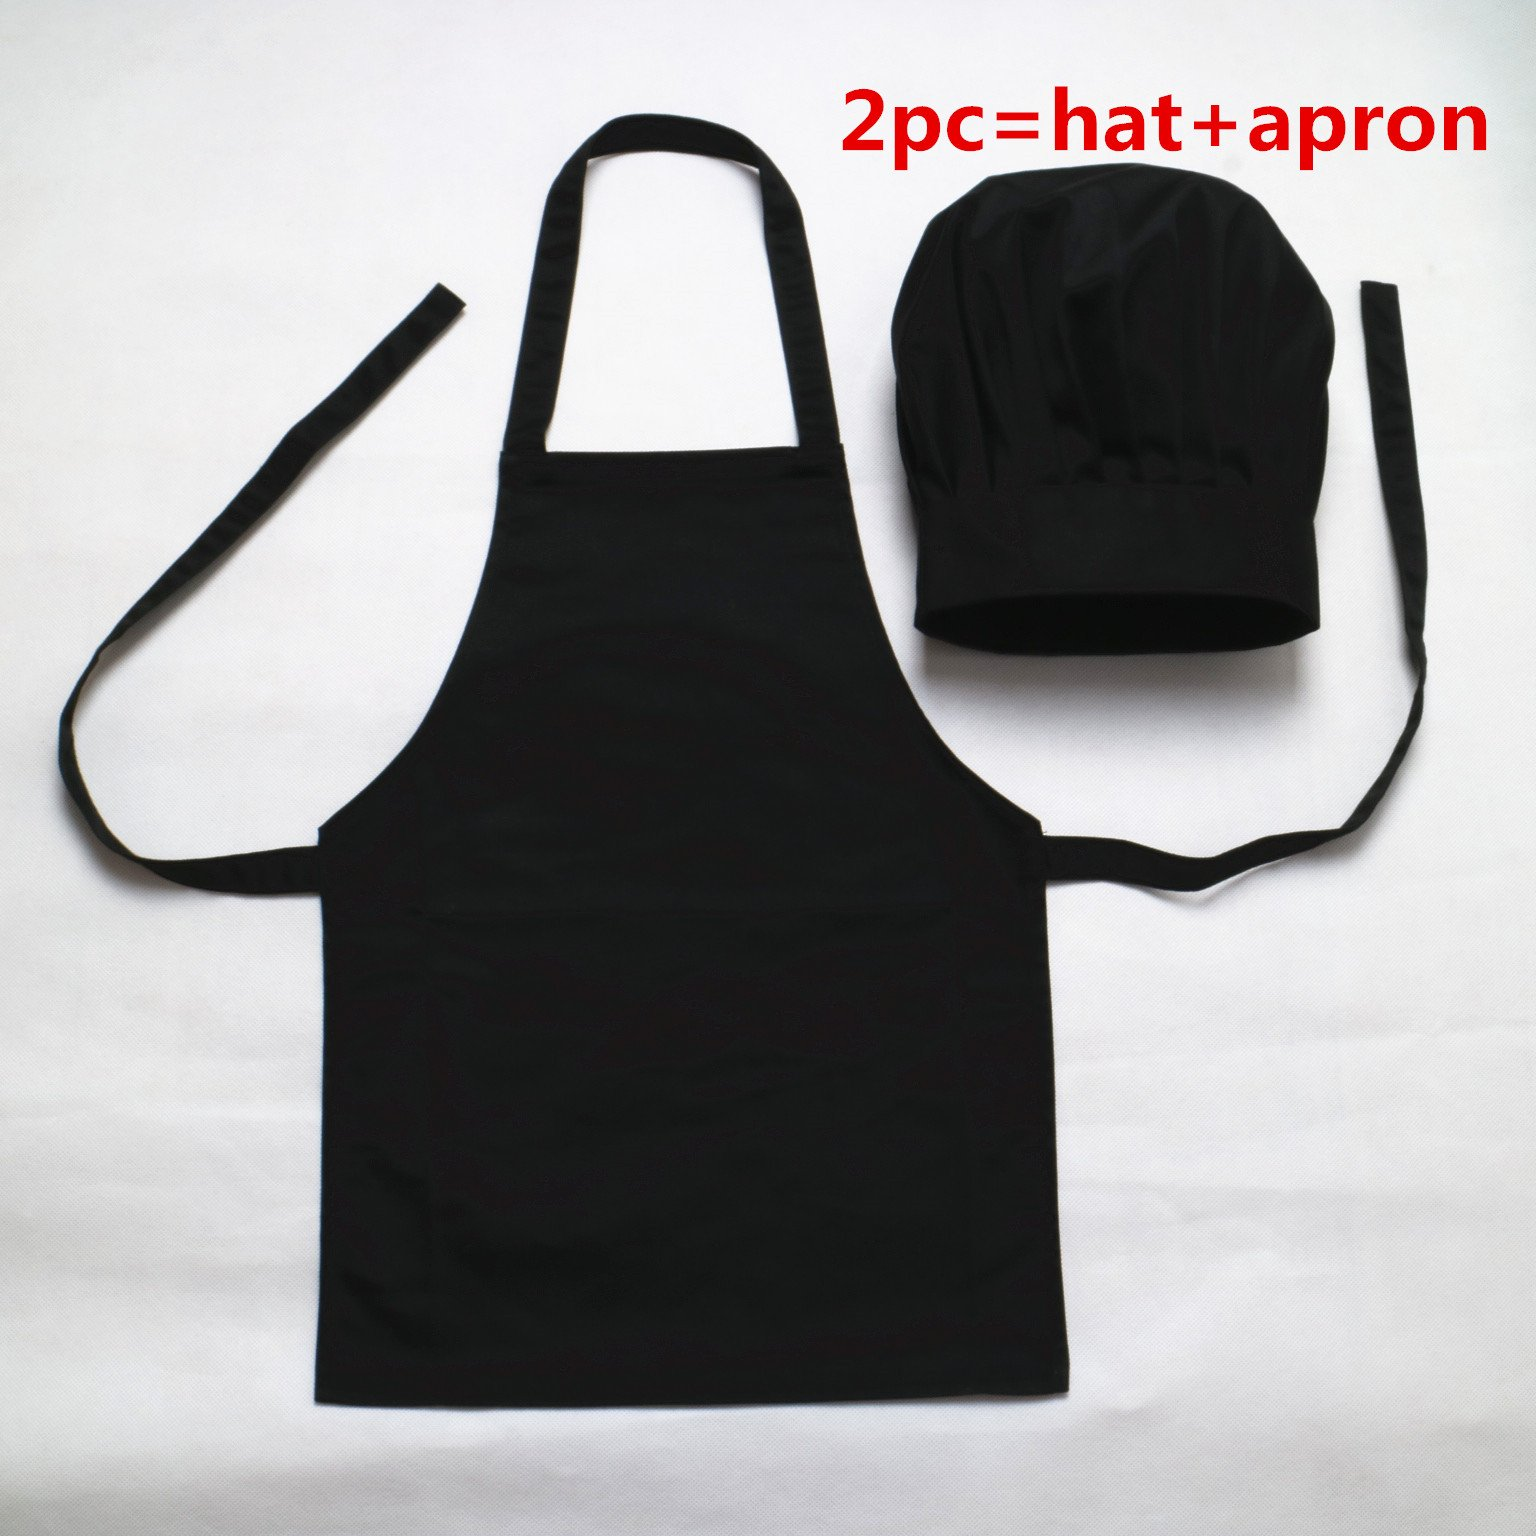 2 Pc-Black kids'Adjustable apron and hat set for cooking,baking, painting or decorating party (3-8Years)